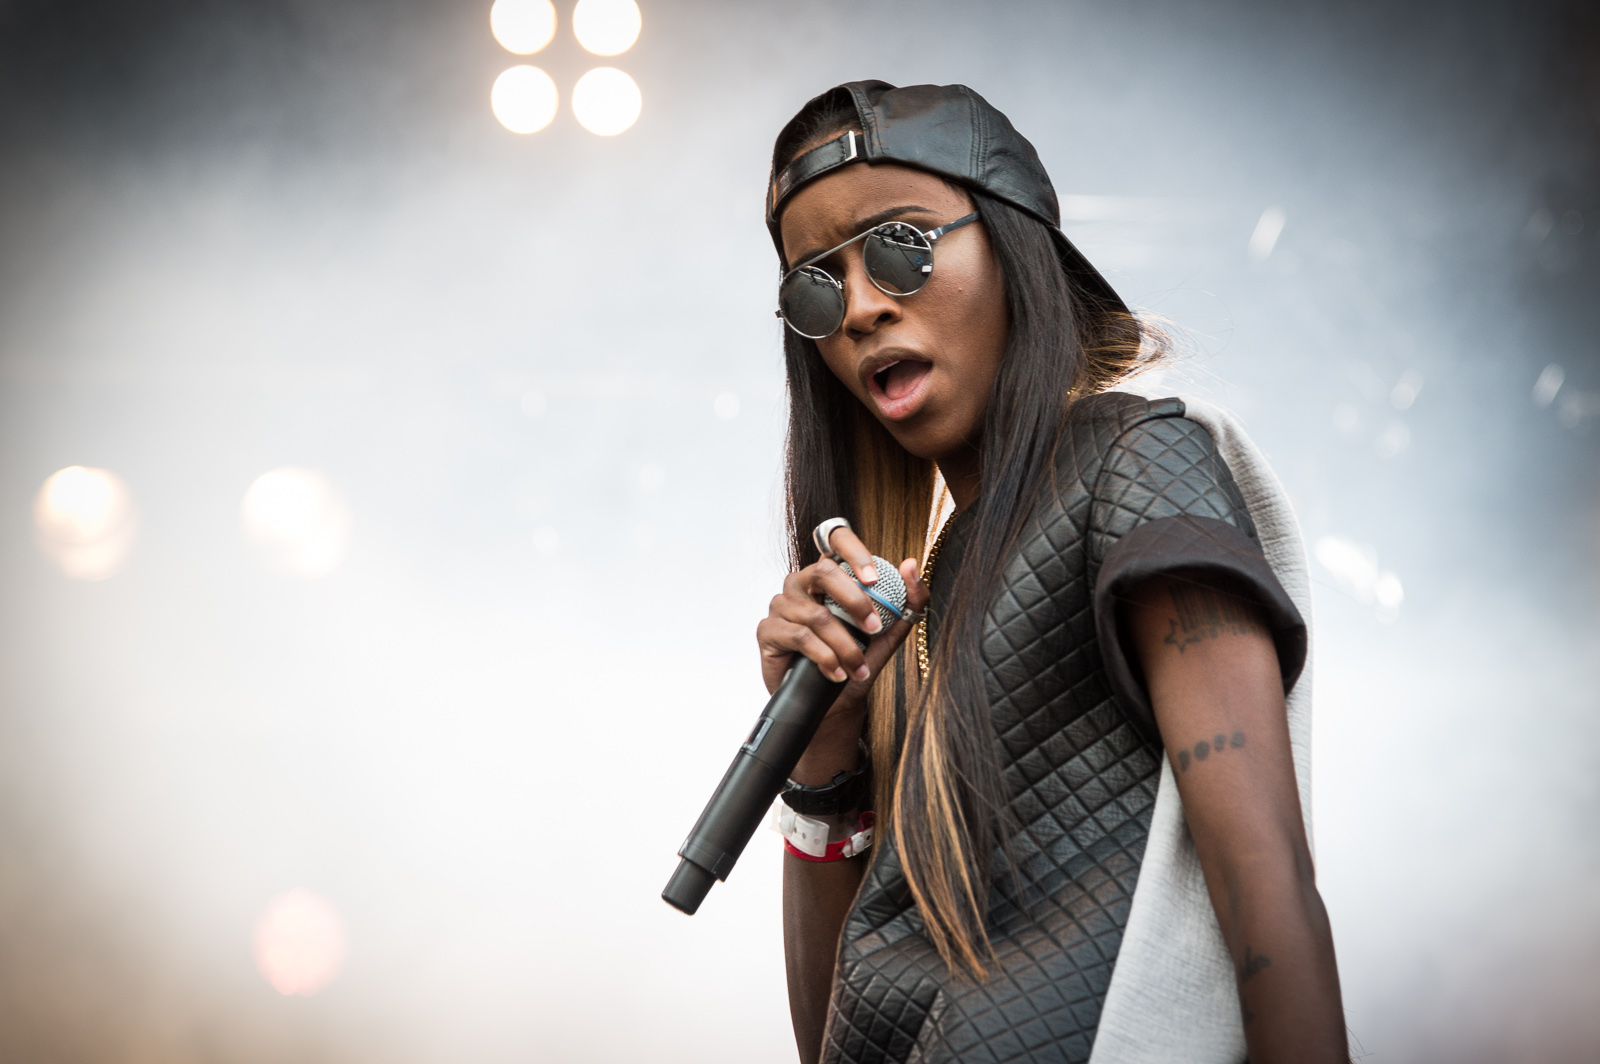 Angela Haze angel haze - wikipedia